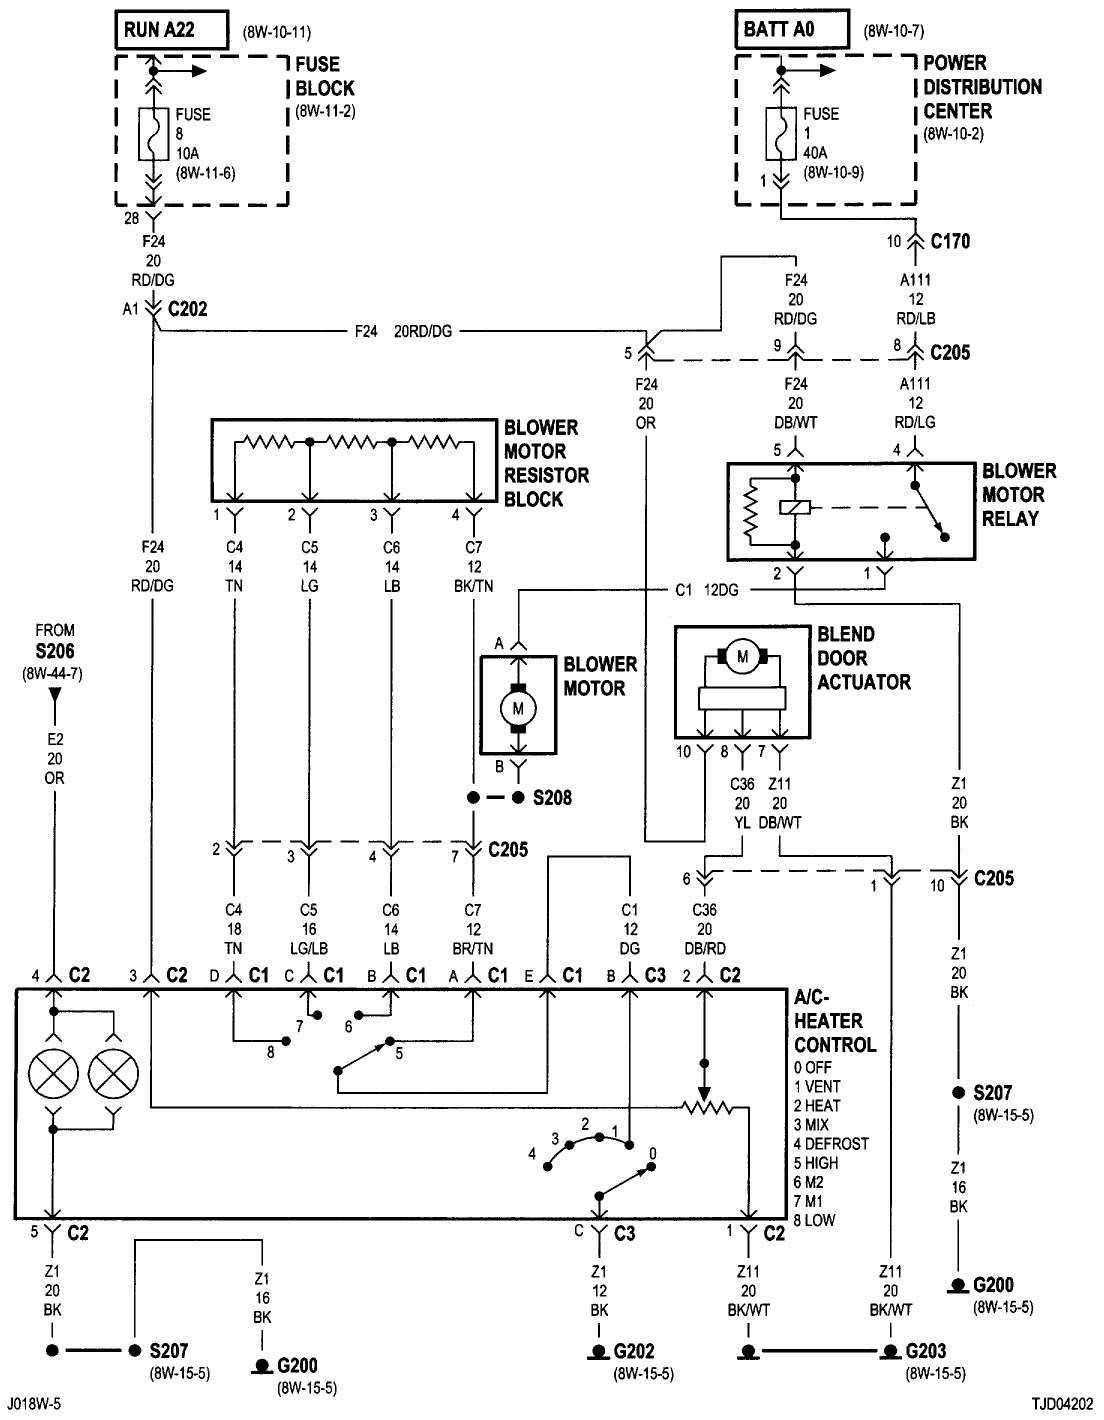 Wiring Diagram Electrical. Wiring Diagram Electrical. | Jeep tj, Jeep  wrangler, JeepPinterest